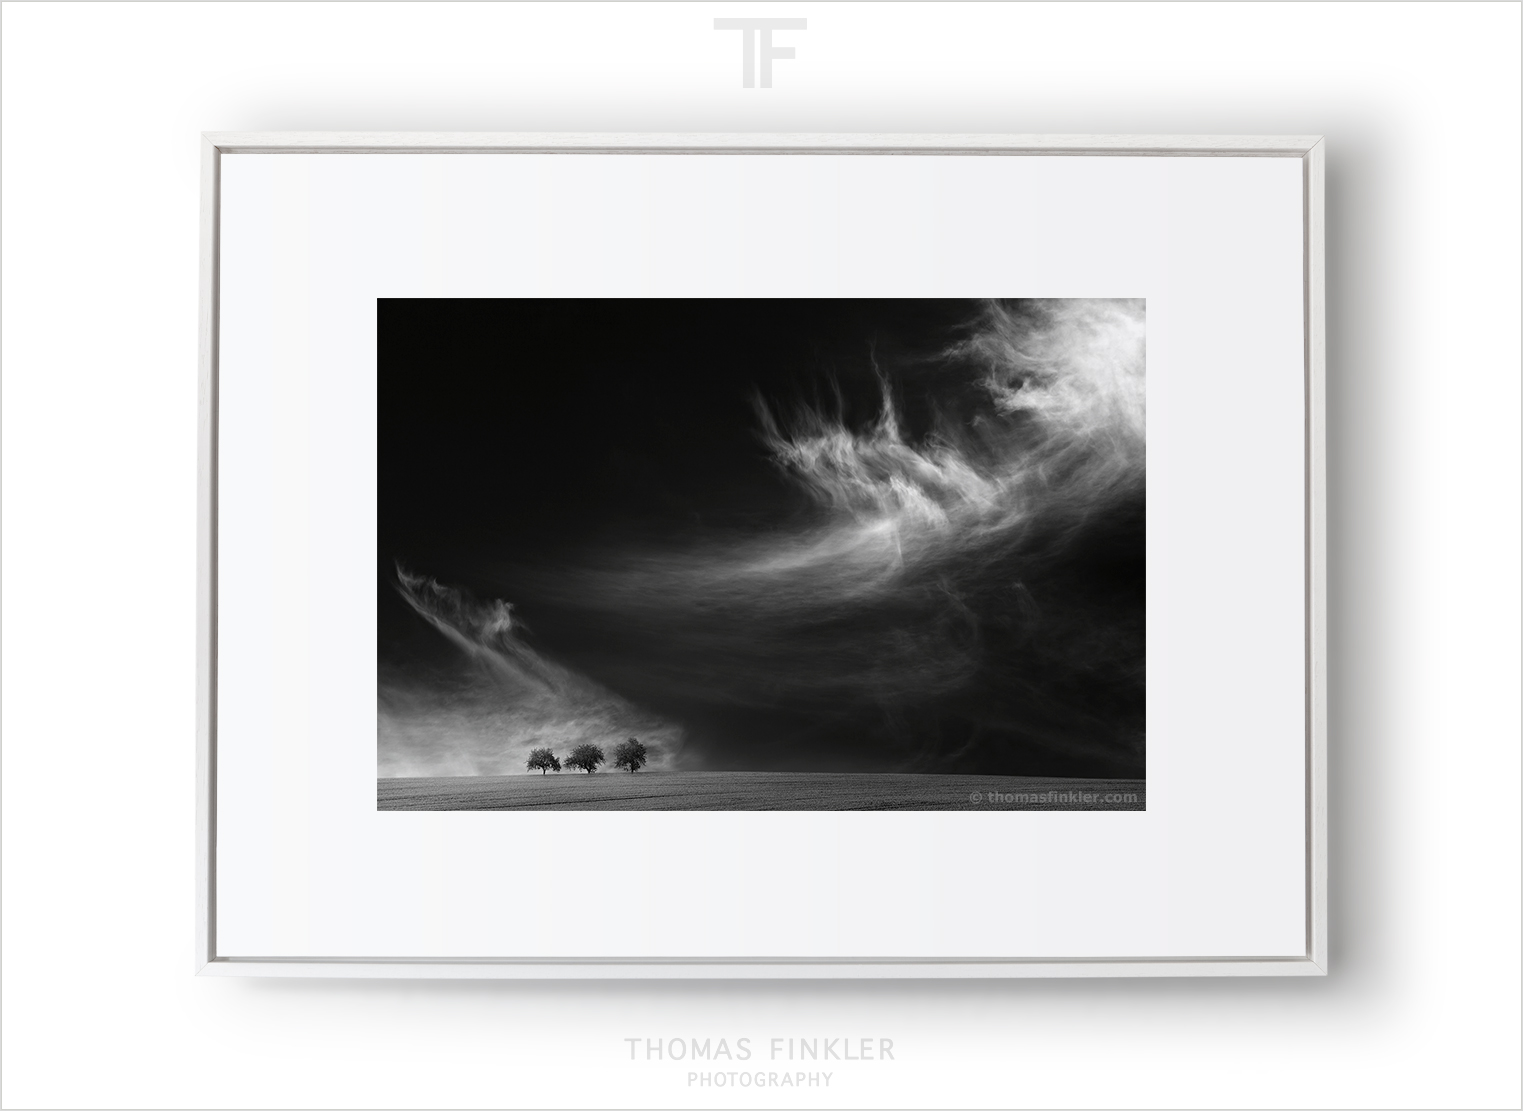 Fine Art Prints Framed Artwork Thomas Finkler Photography